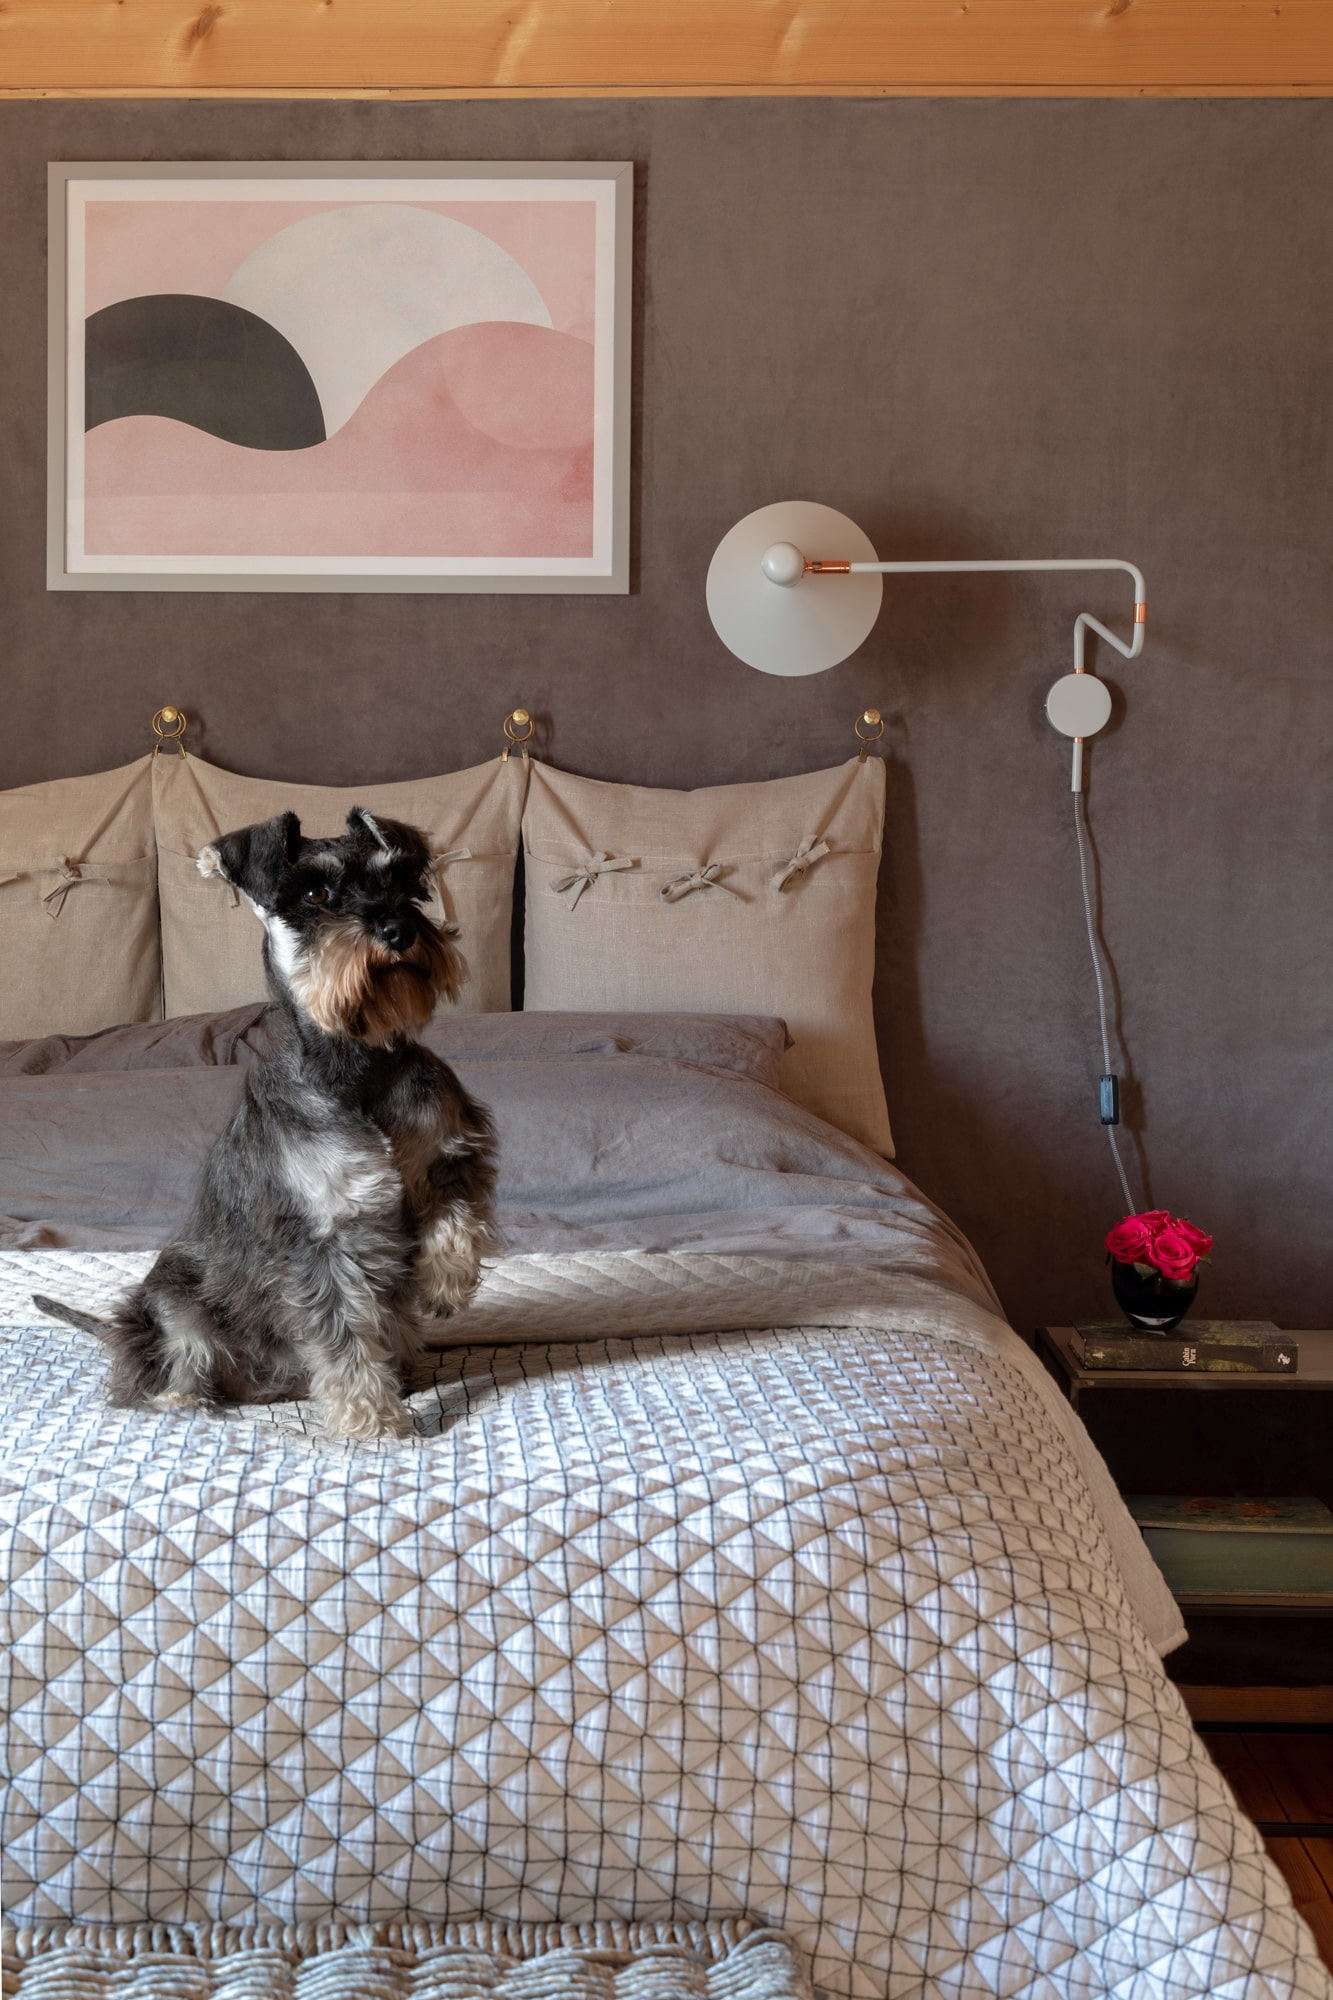 Interior design photo of a bedroom with a dog sitting on the bed